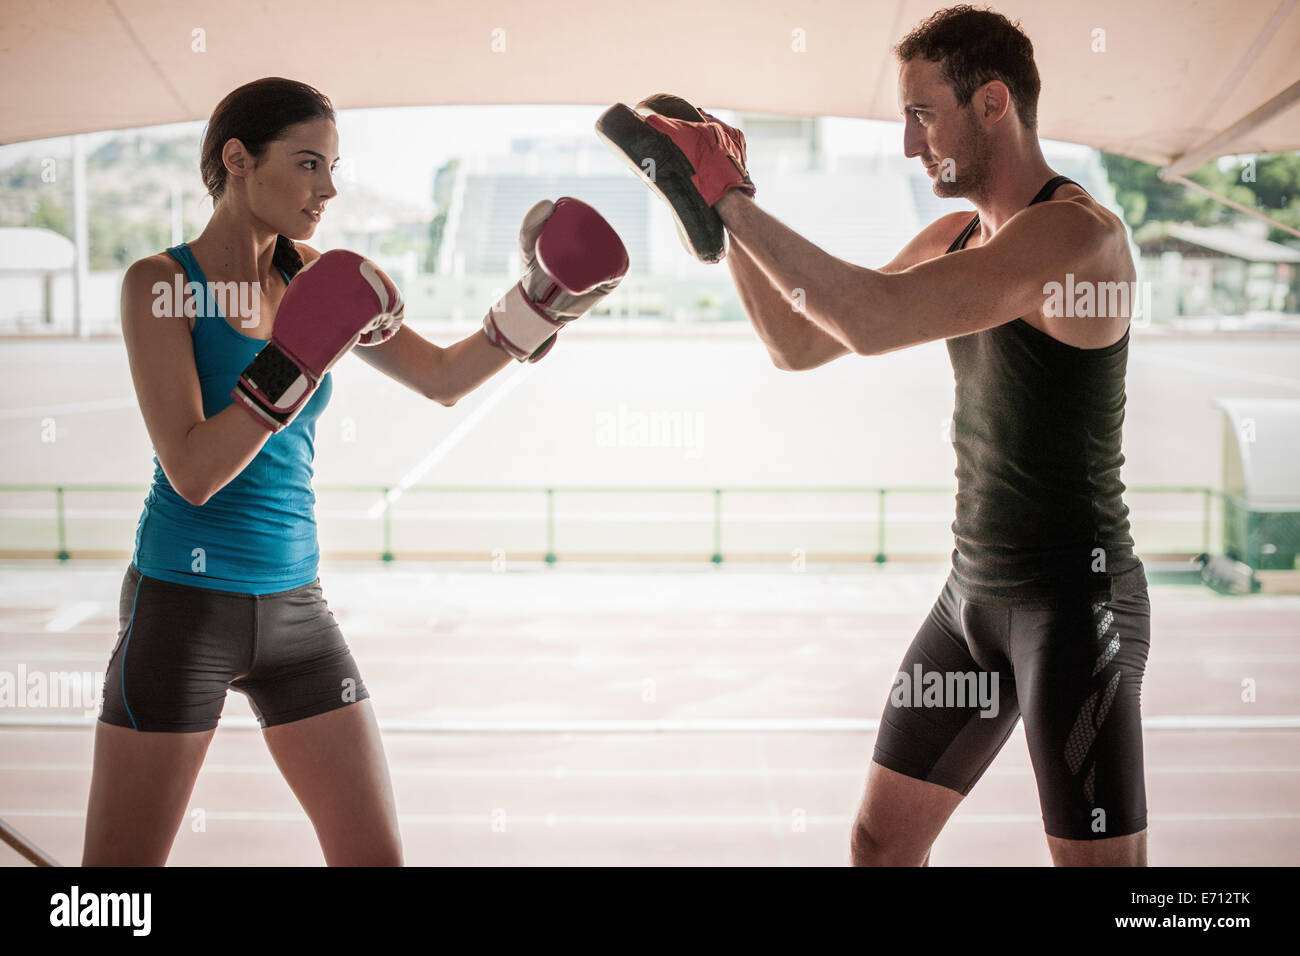 Young woman boxing with personal trainer - Stock Image